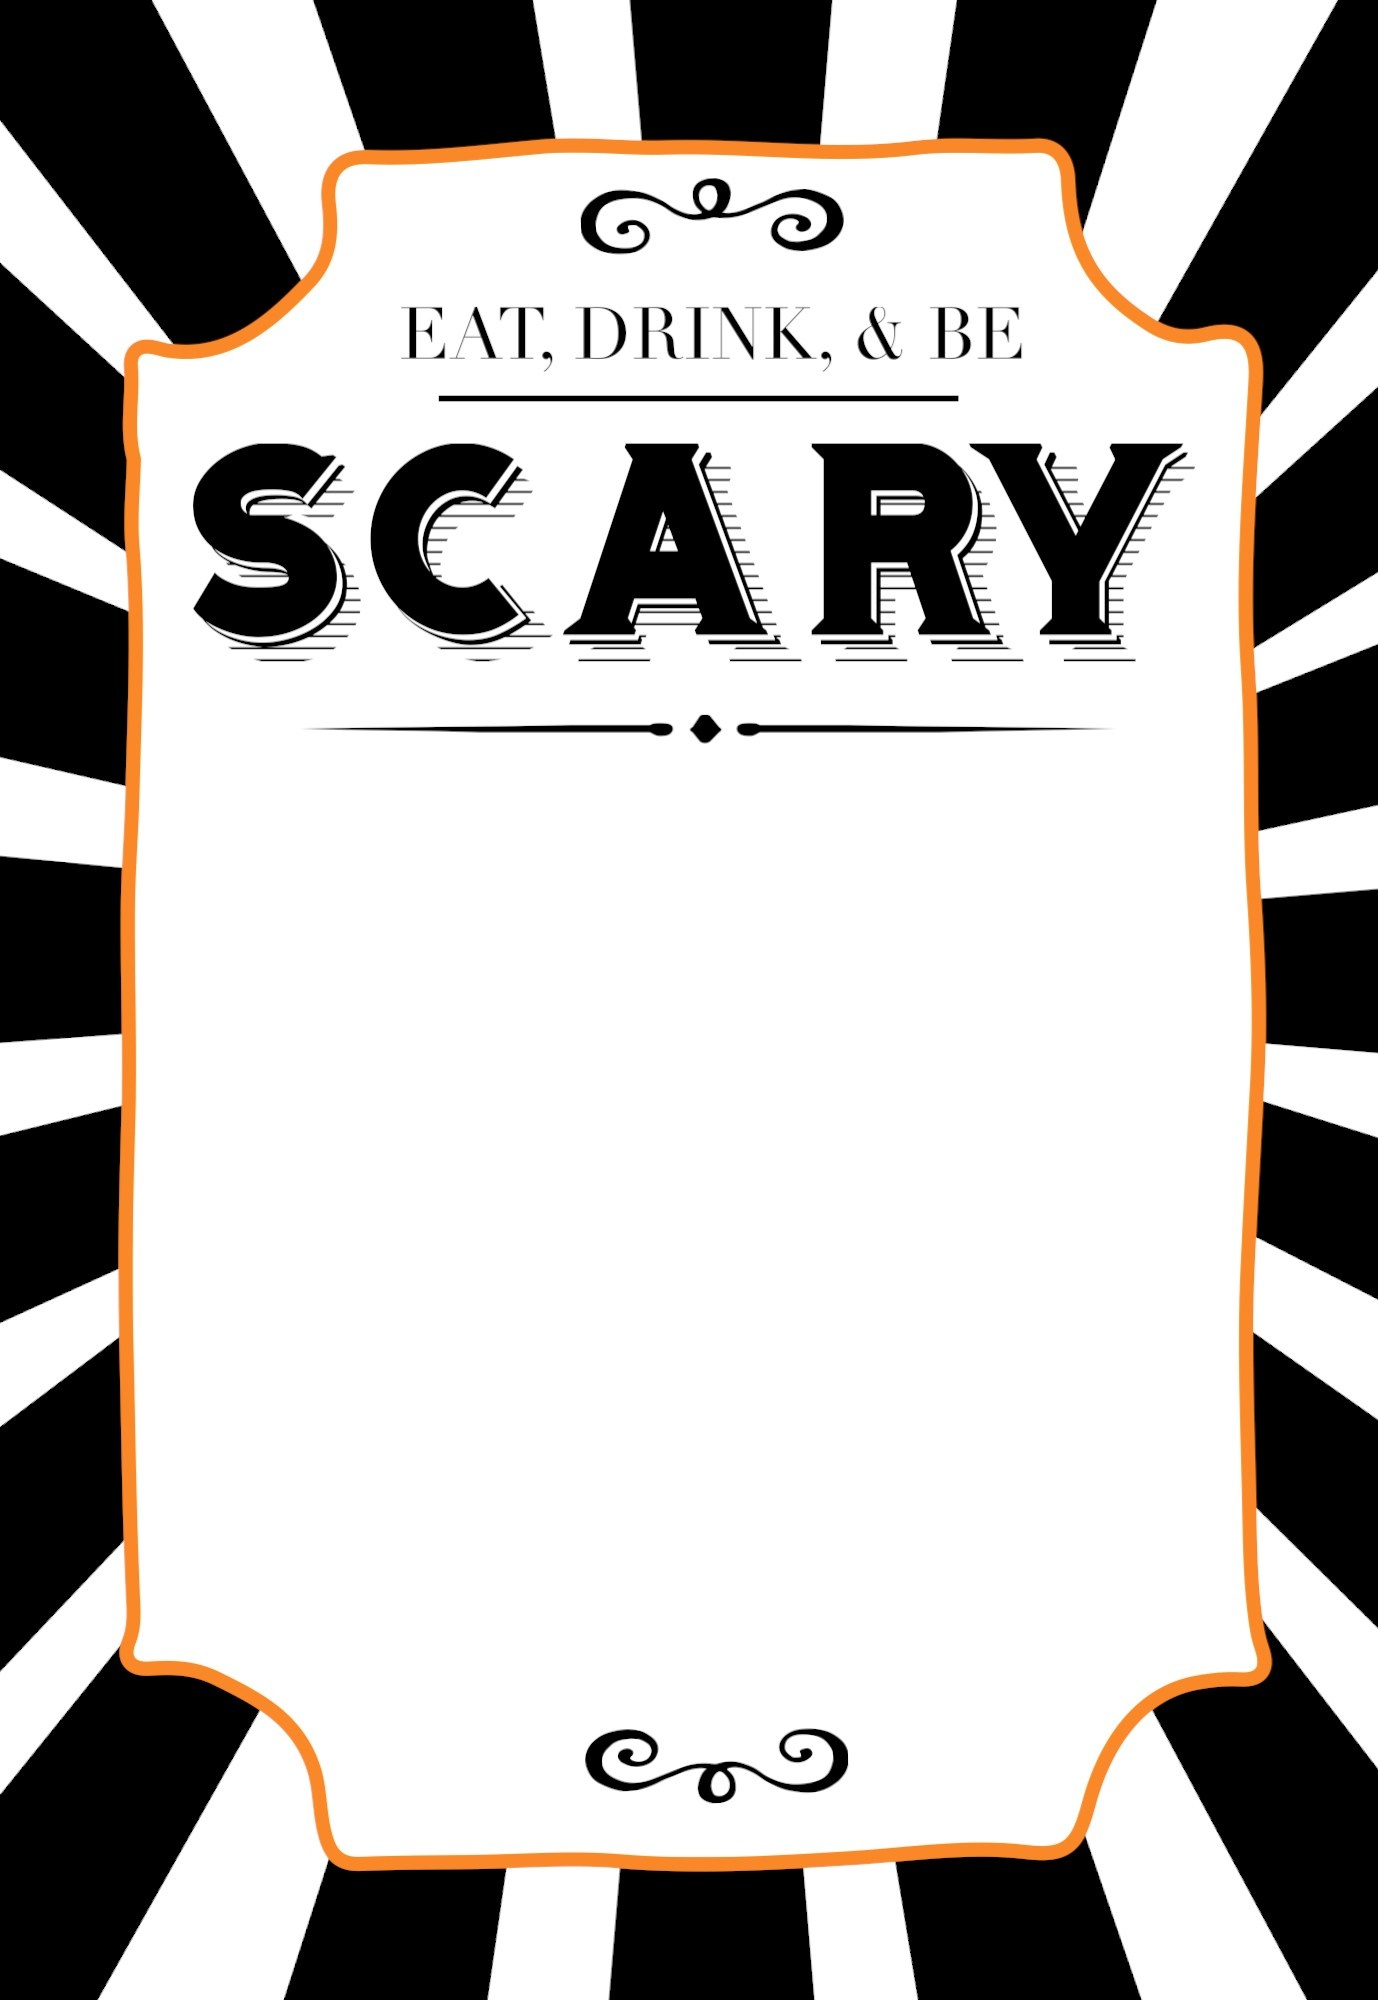 Halloween Invitations Free Printable Template - Paper Trail Design - Halloween Invitations Free Printable Black And White